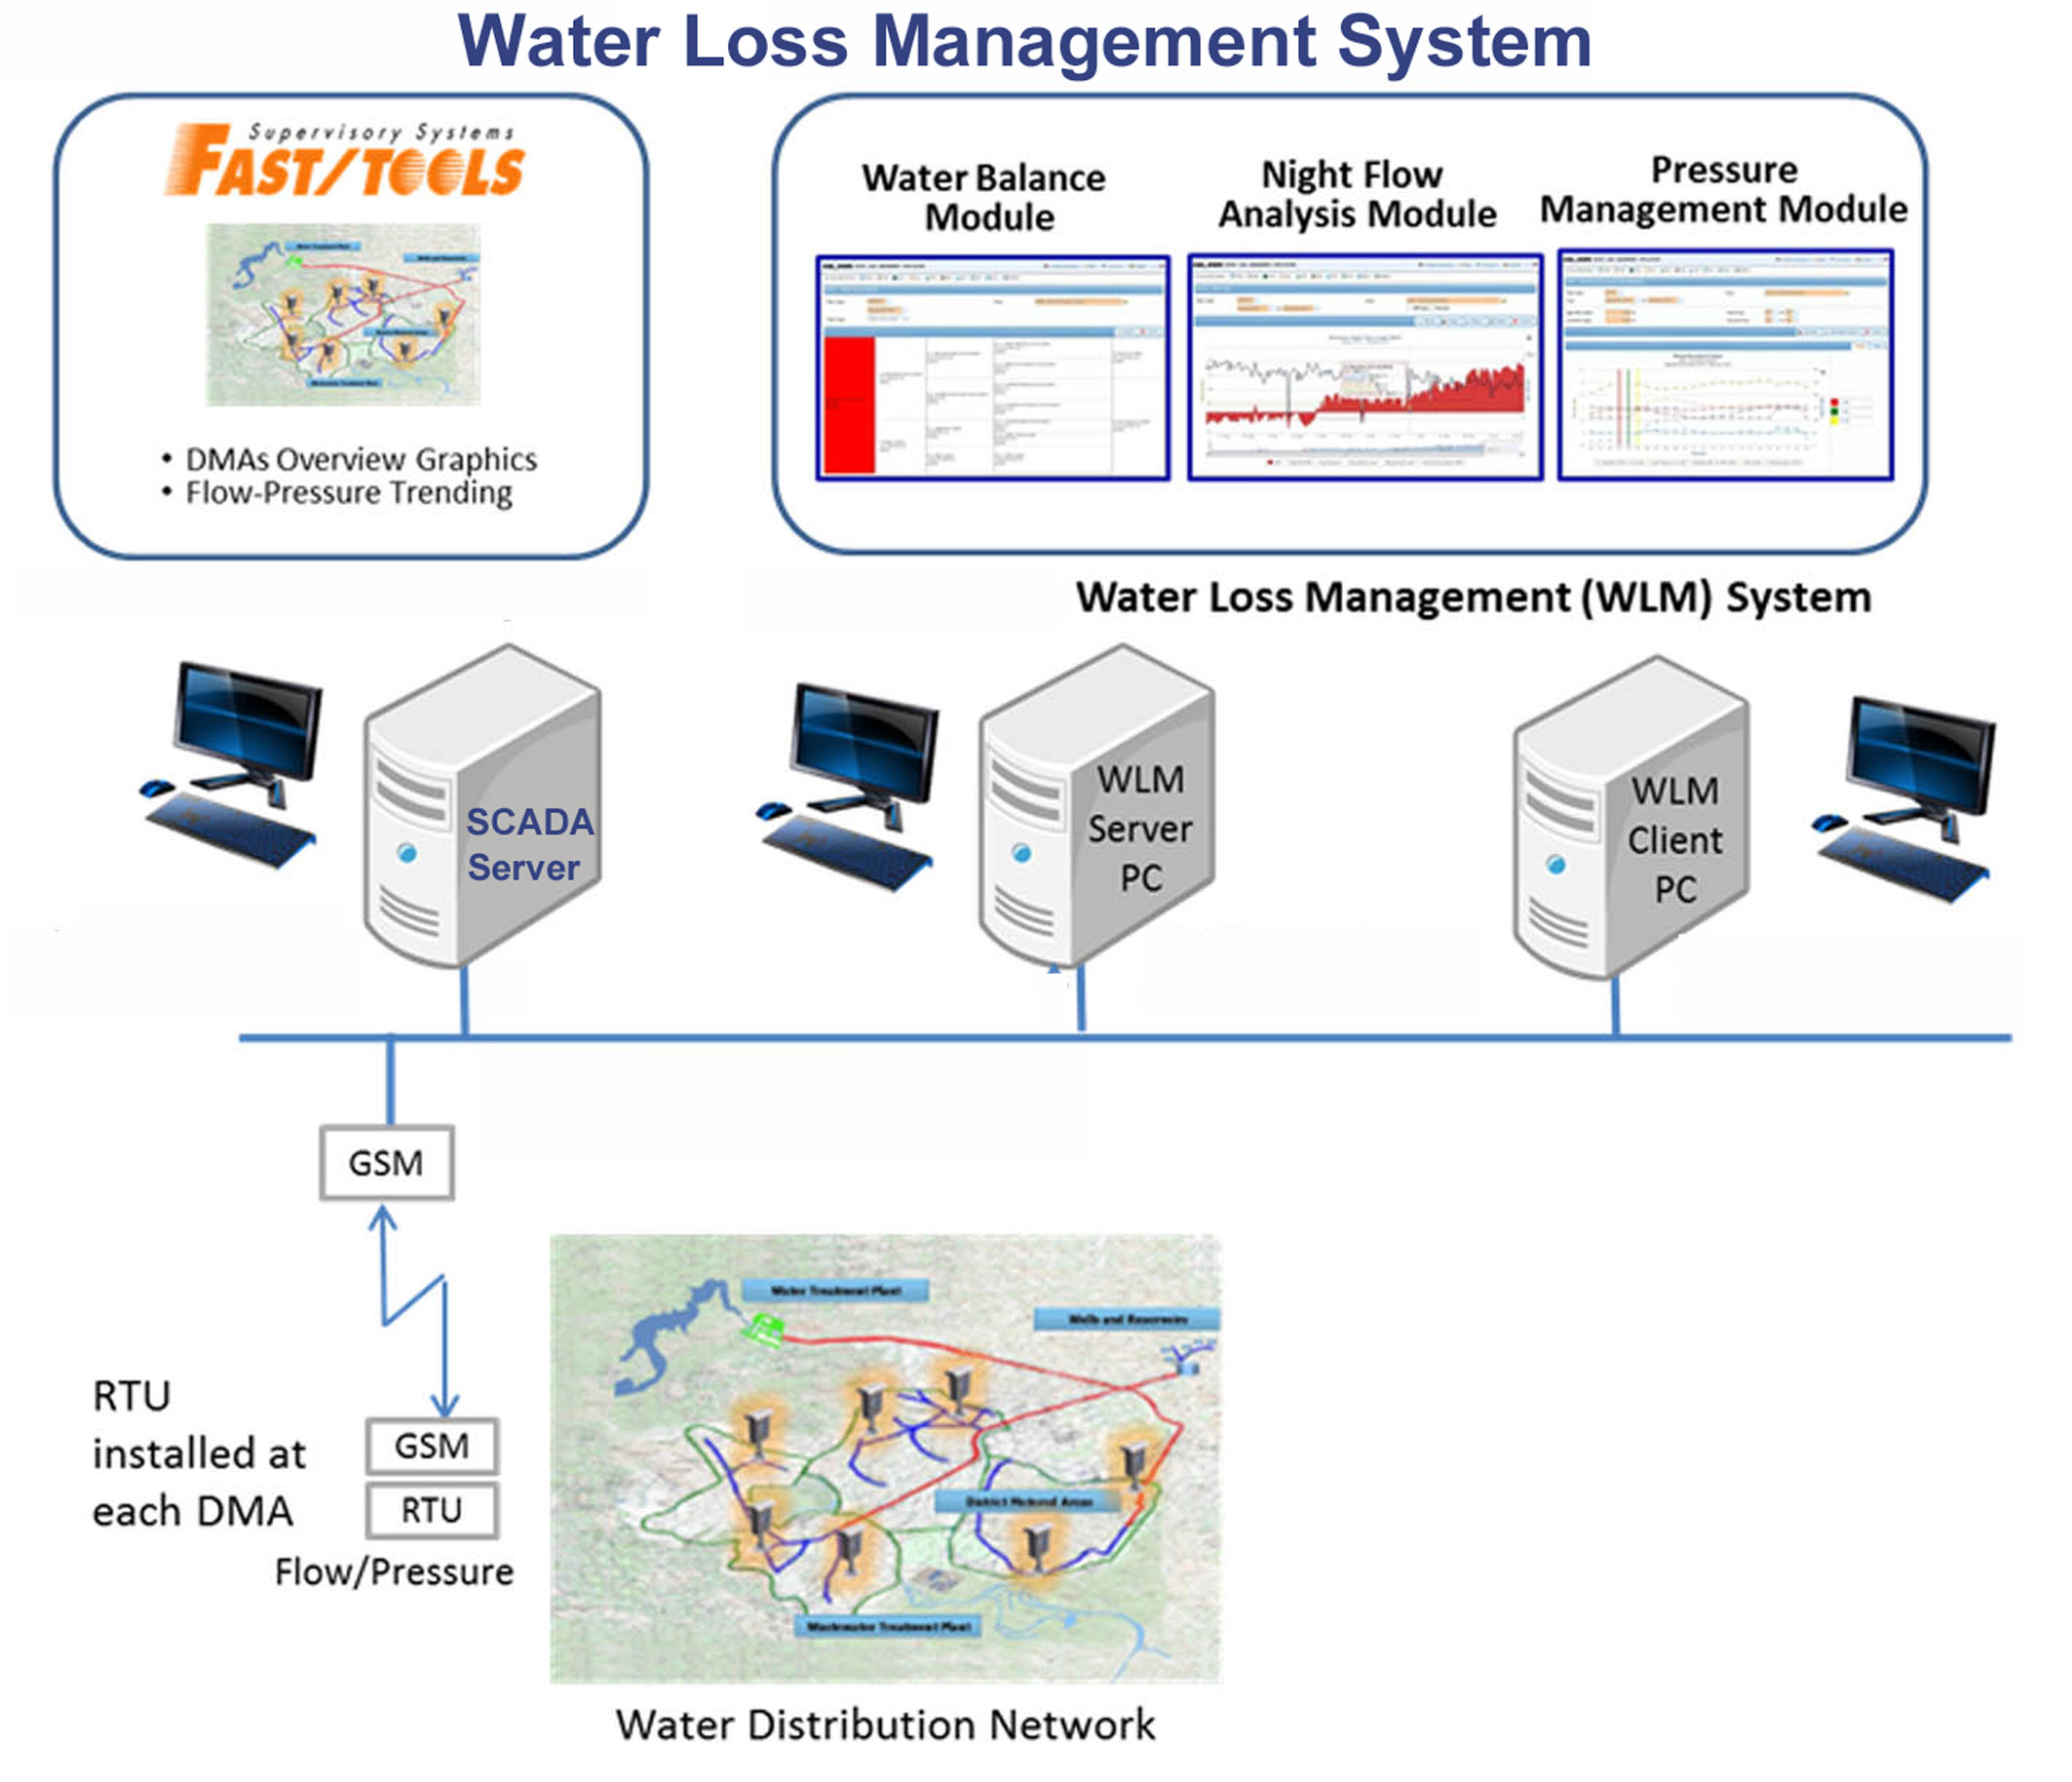 Water Loss Management System